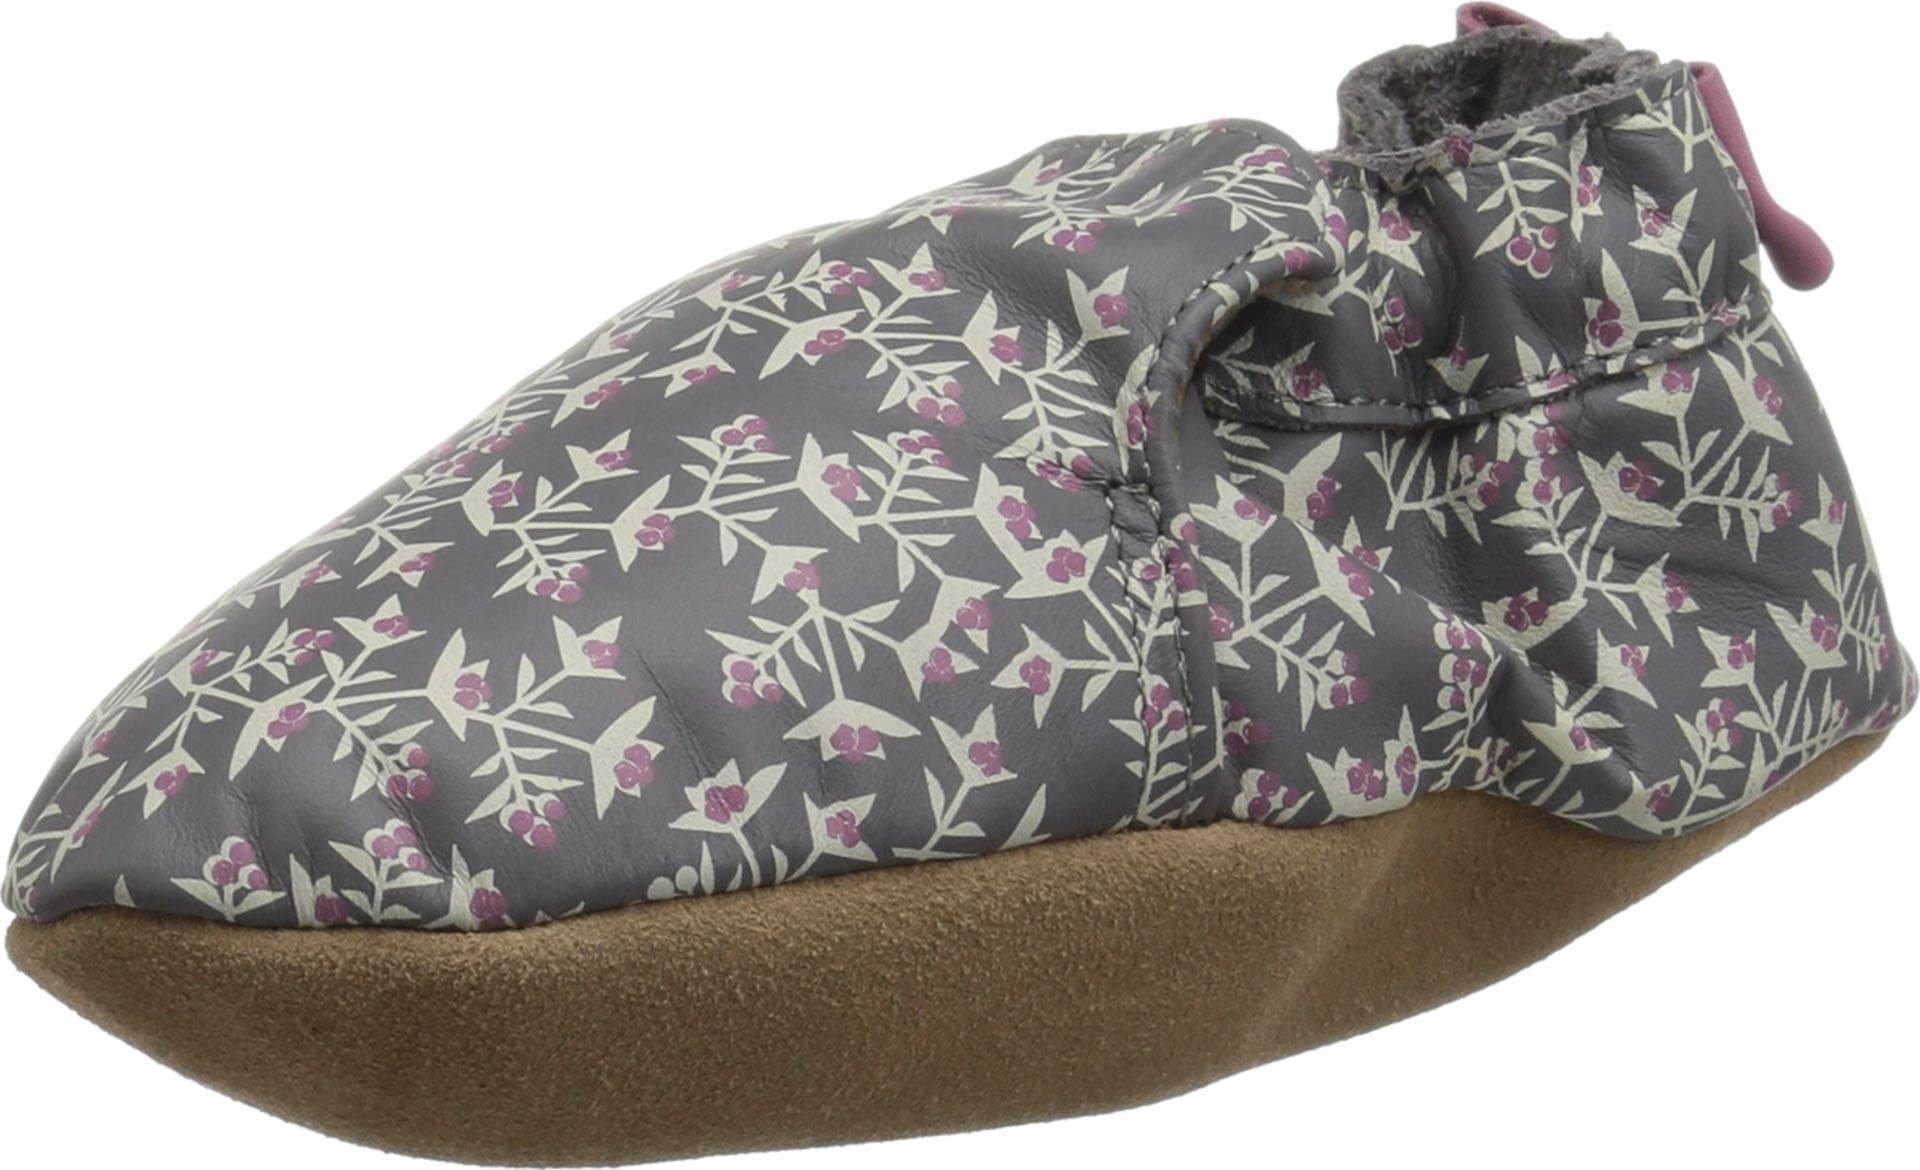 Robeez Girls' Soft Soles with Bow Back Crib Shoe, Berry Beautiful Grey, 6-12 Months M US Infant